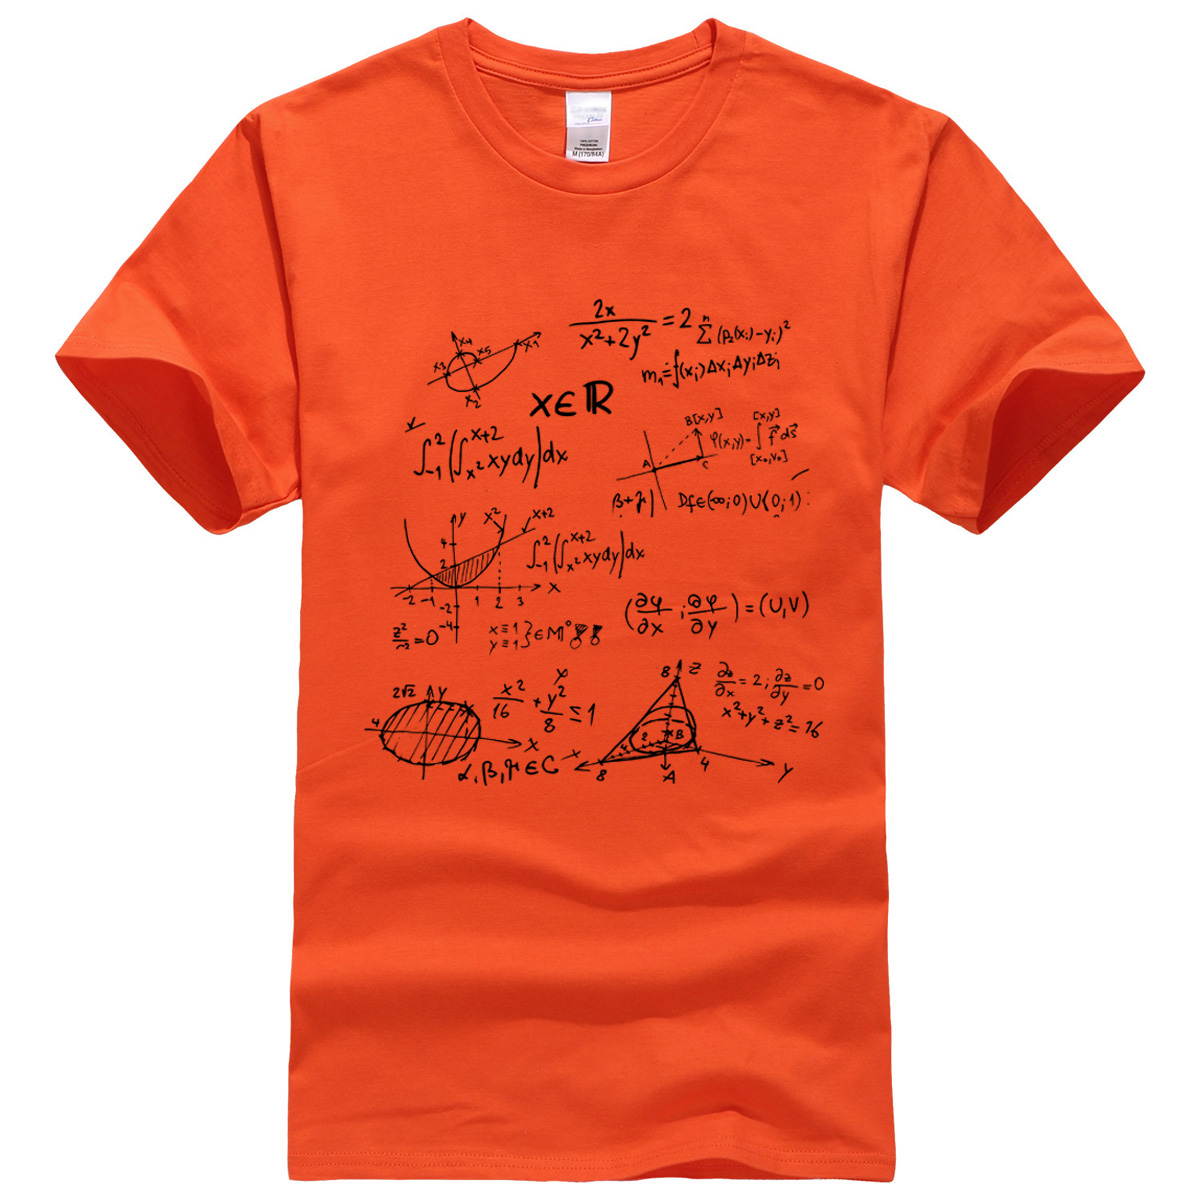 T-shirt 2019 summer Mathematical Formula men's T-shirts The Big Bang Theory t shirt men sportwear brand-clothing top tees cotton